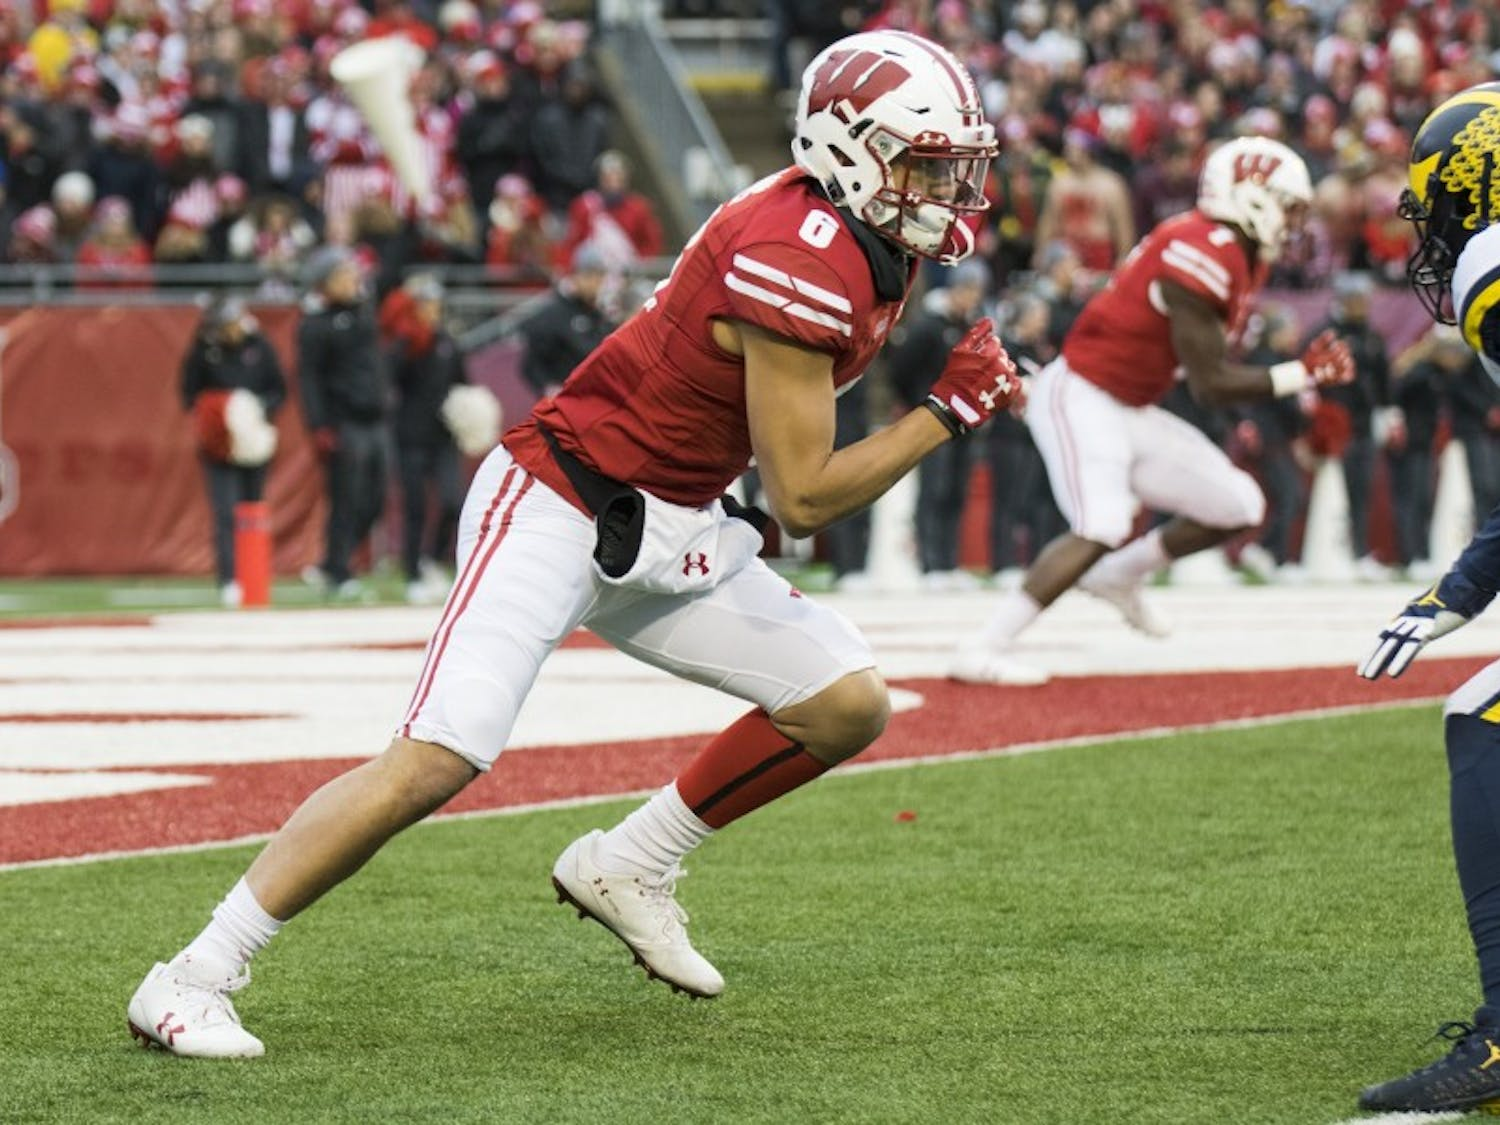 Sophomore receiver Danny Davis needs to be a threat on the outside of field for Wisconsin to open up its passing game and keep Iowa's defense on its heels.